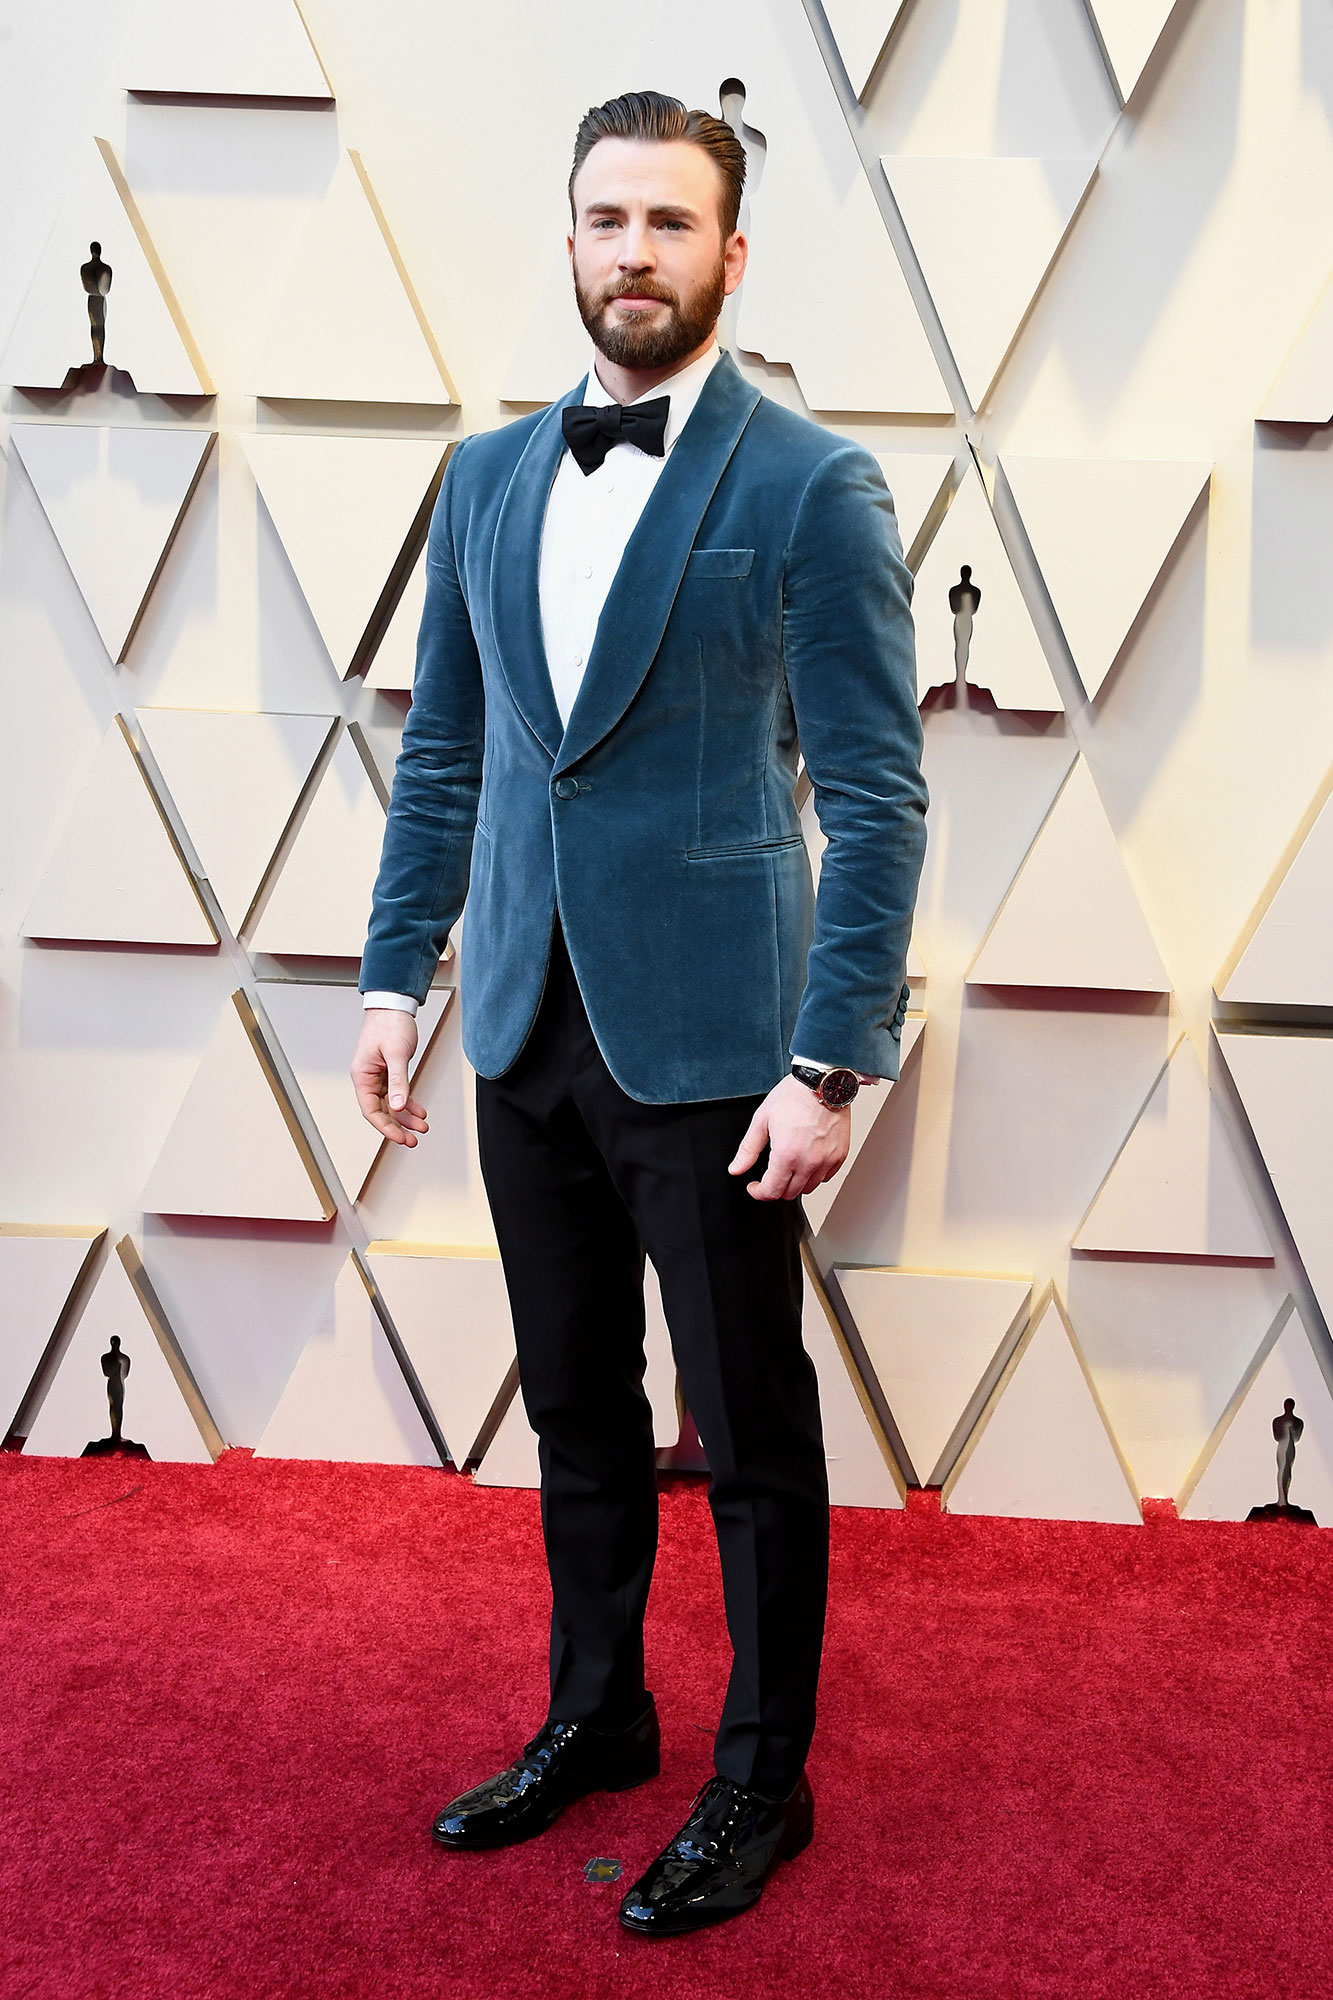 Oscars 2019 Red Carpet Fashion Hot Men In Suits Tuxes